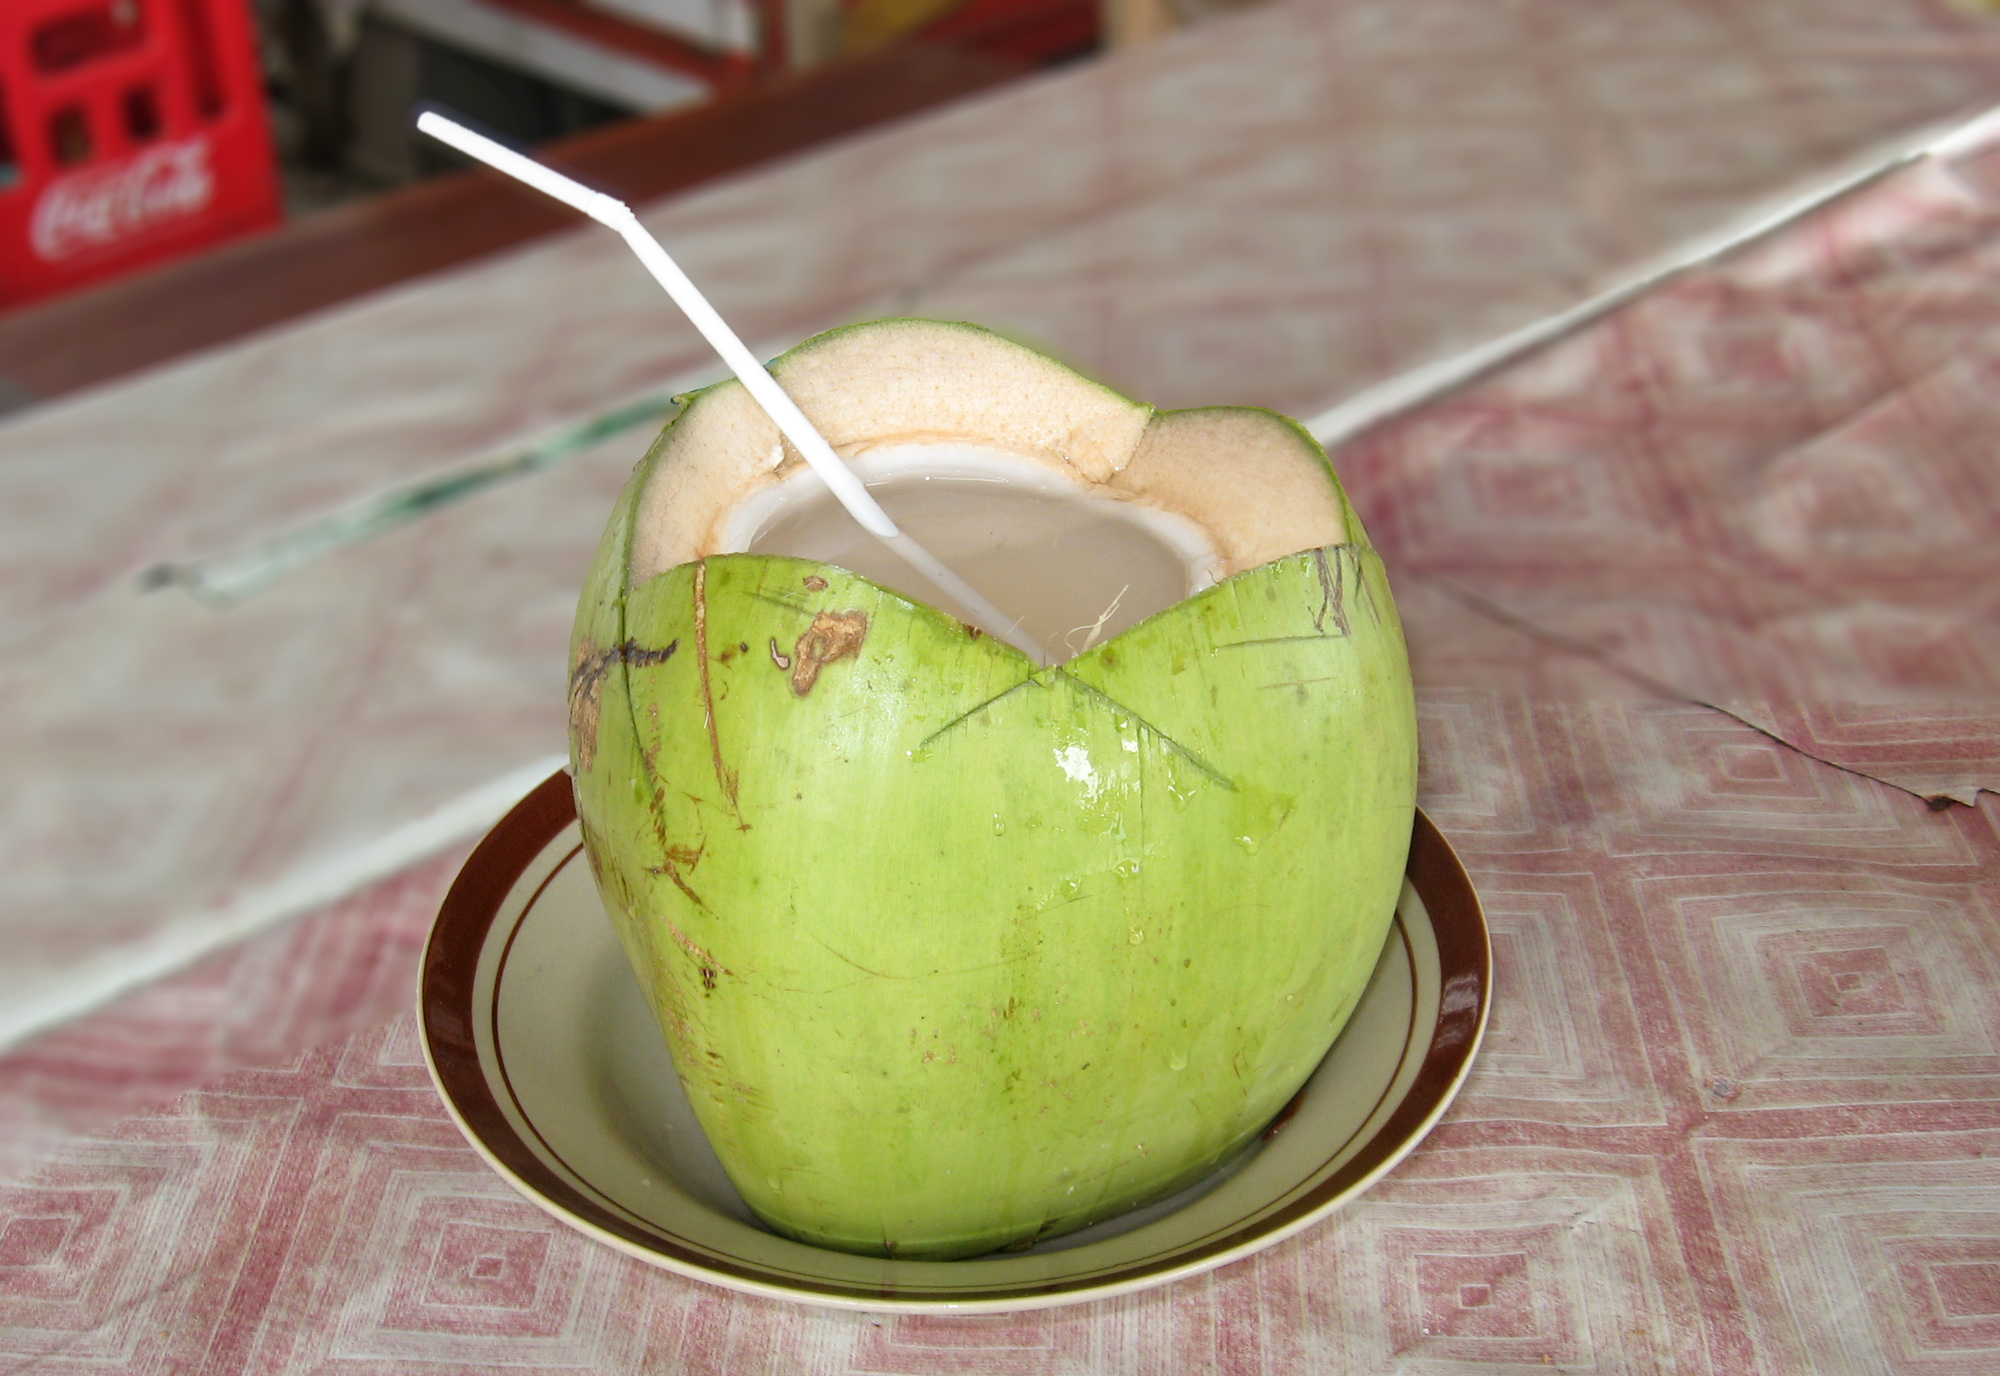 coconut water - wikipedia